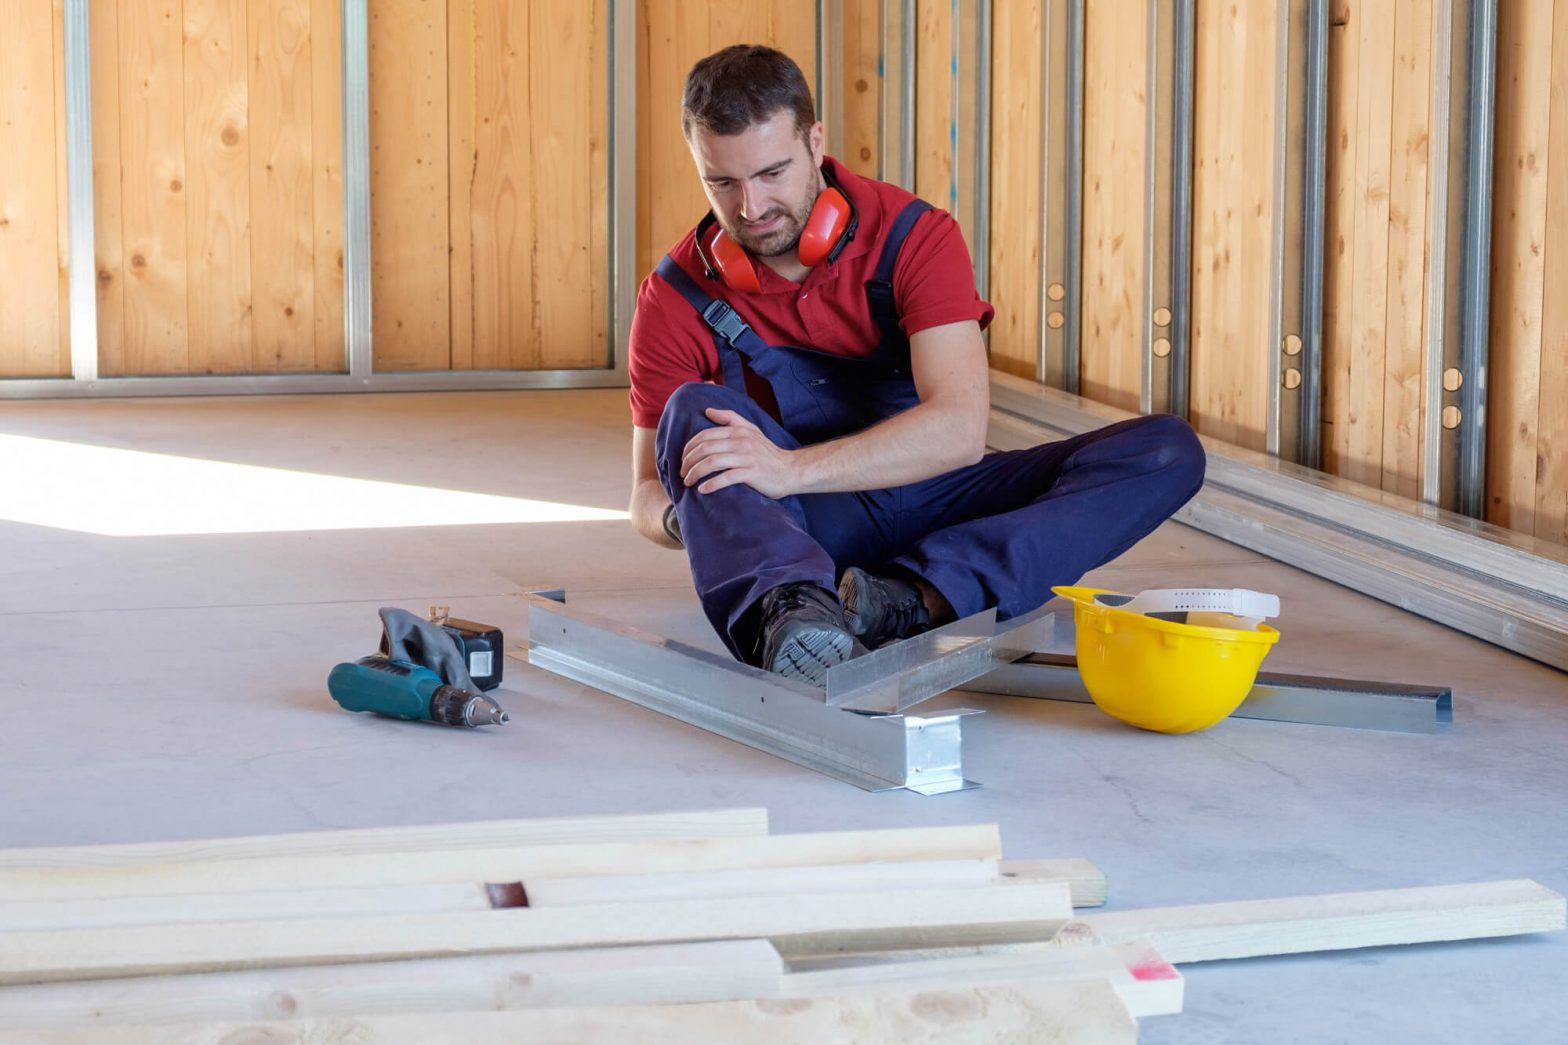 workers compensation policy